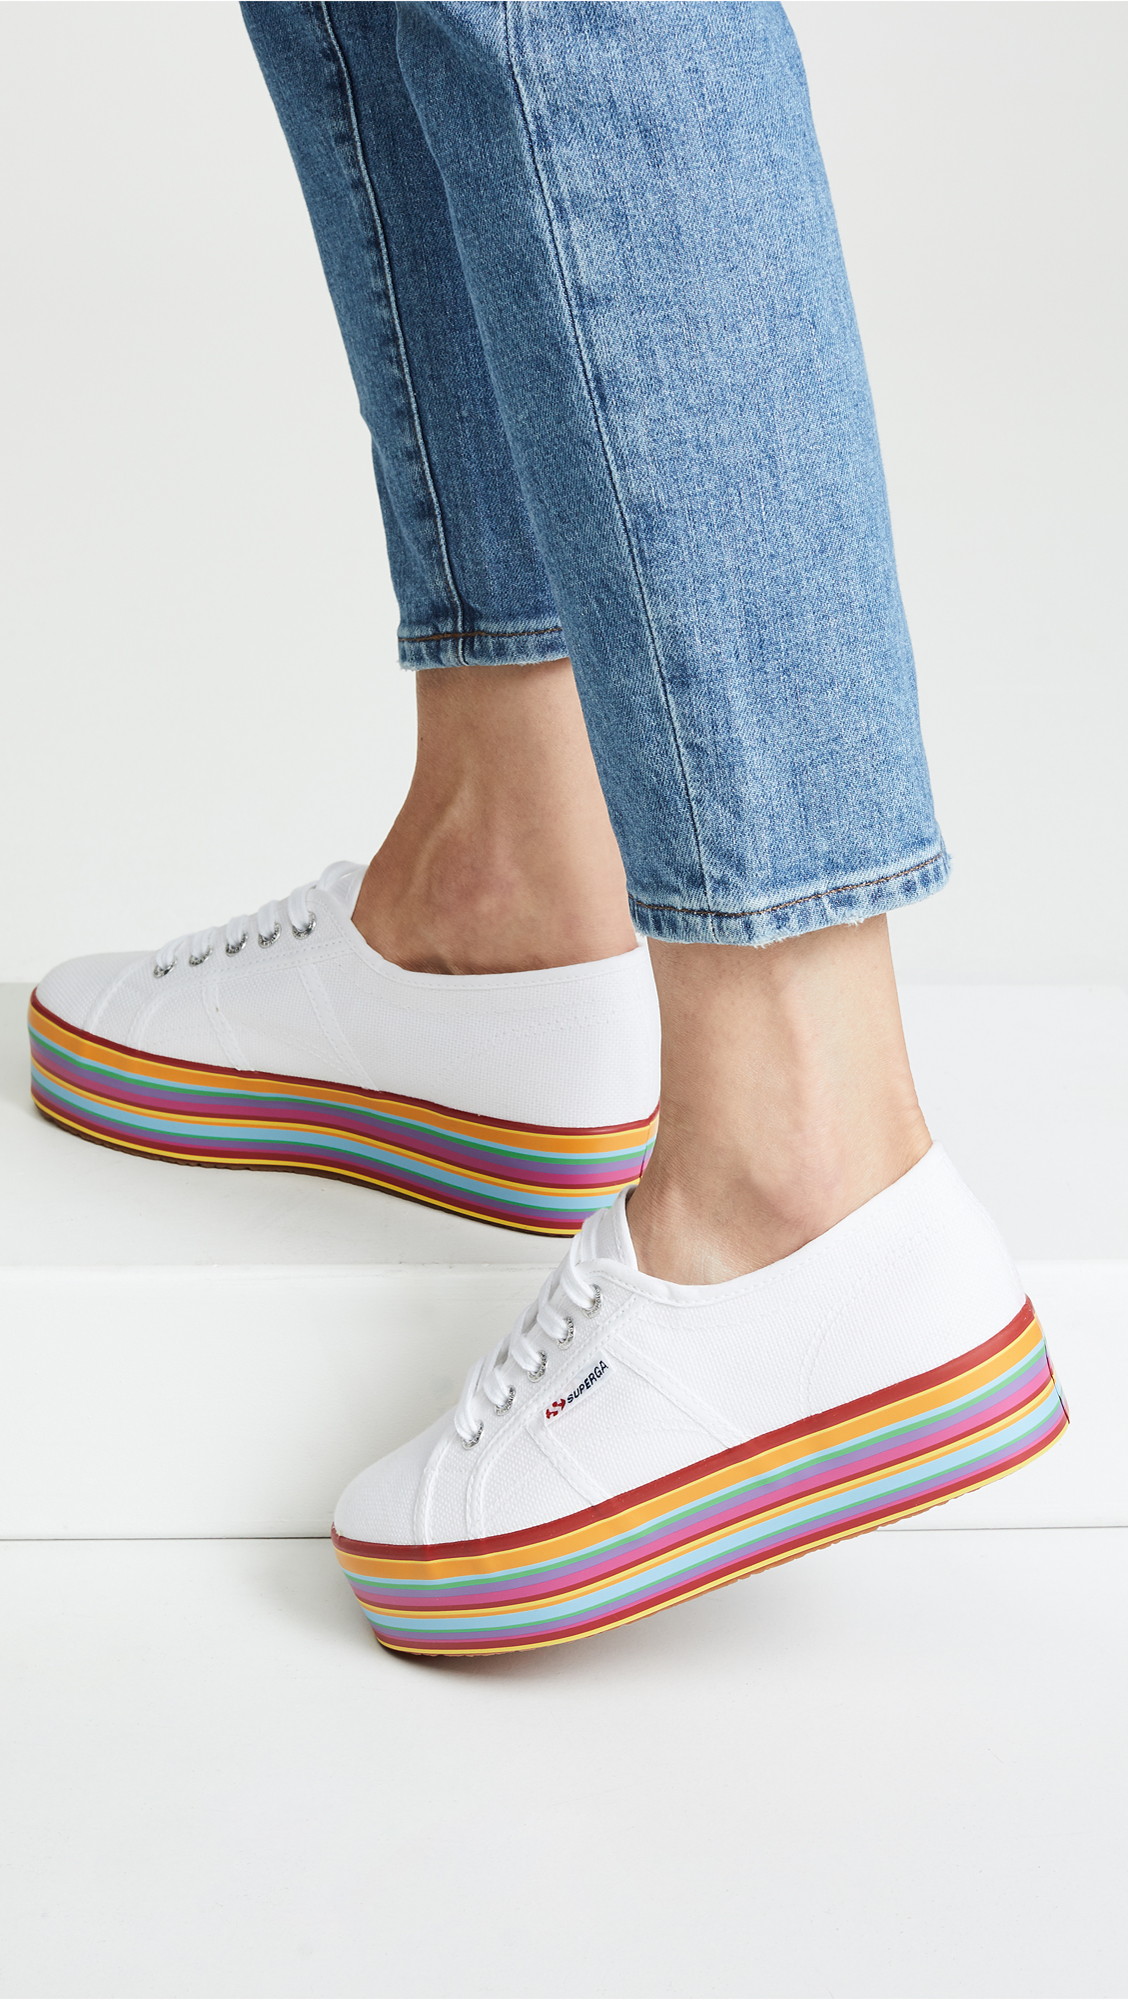 b03bfa15b982 Superga Multicolored Platform Sneakers